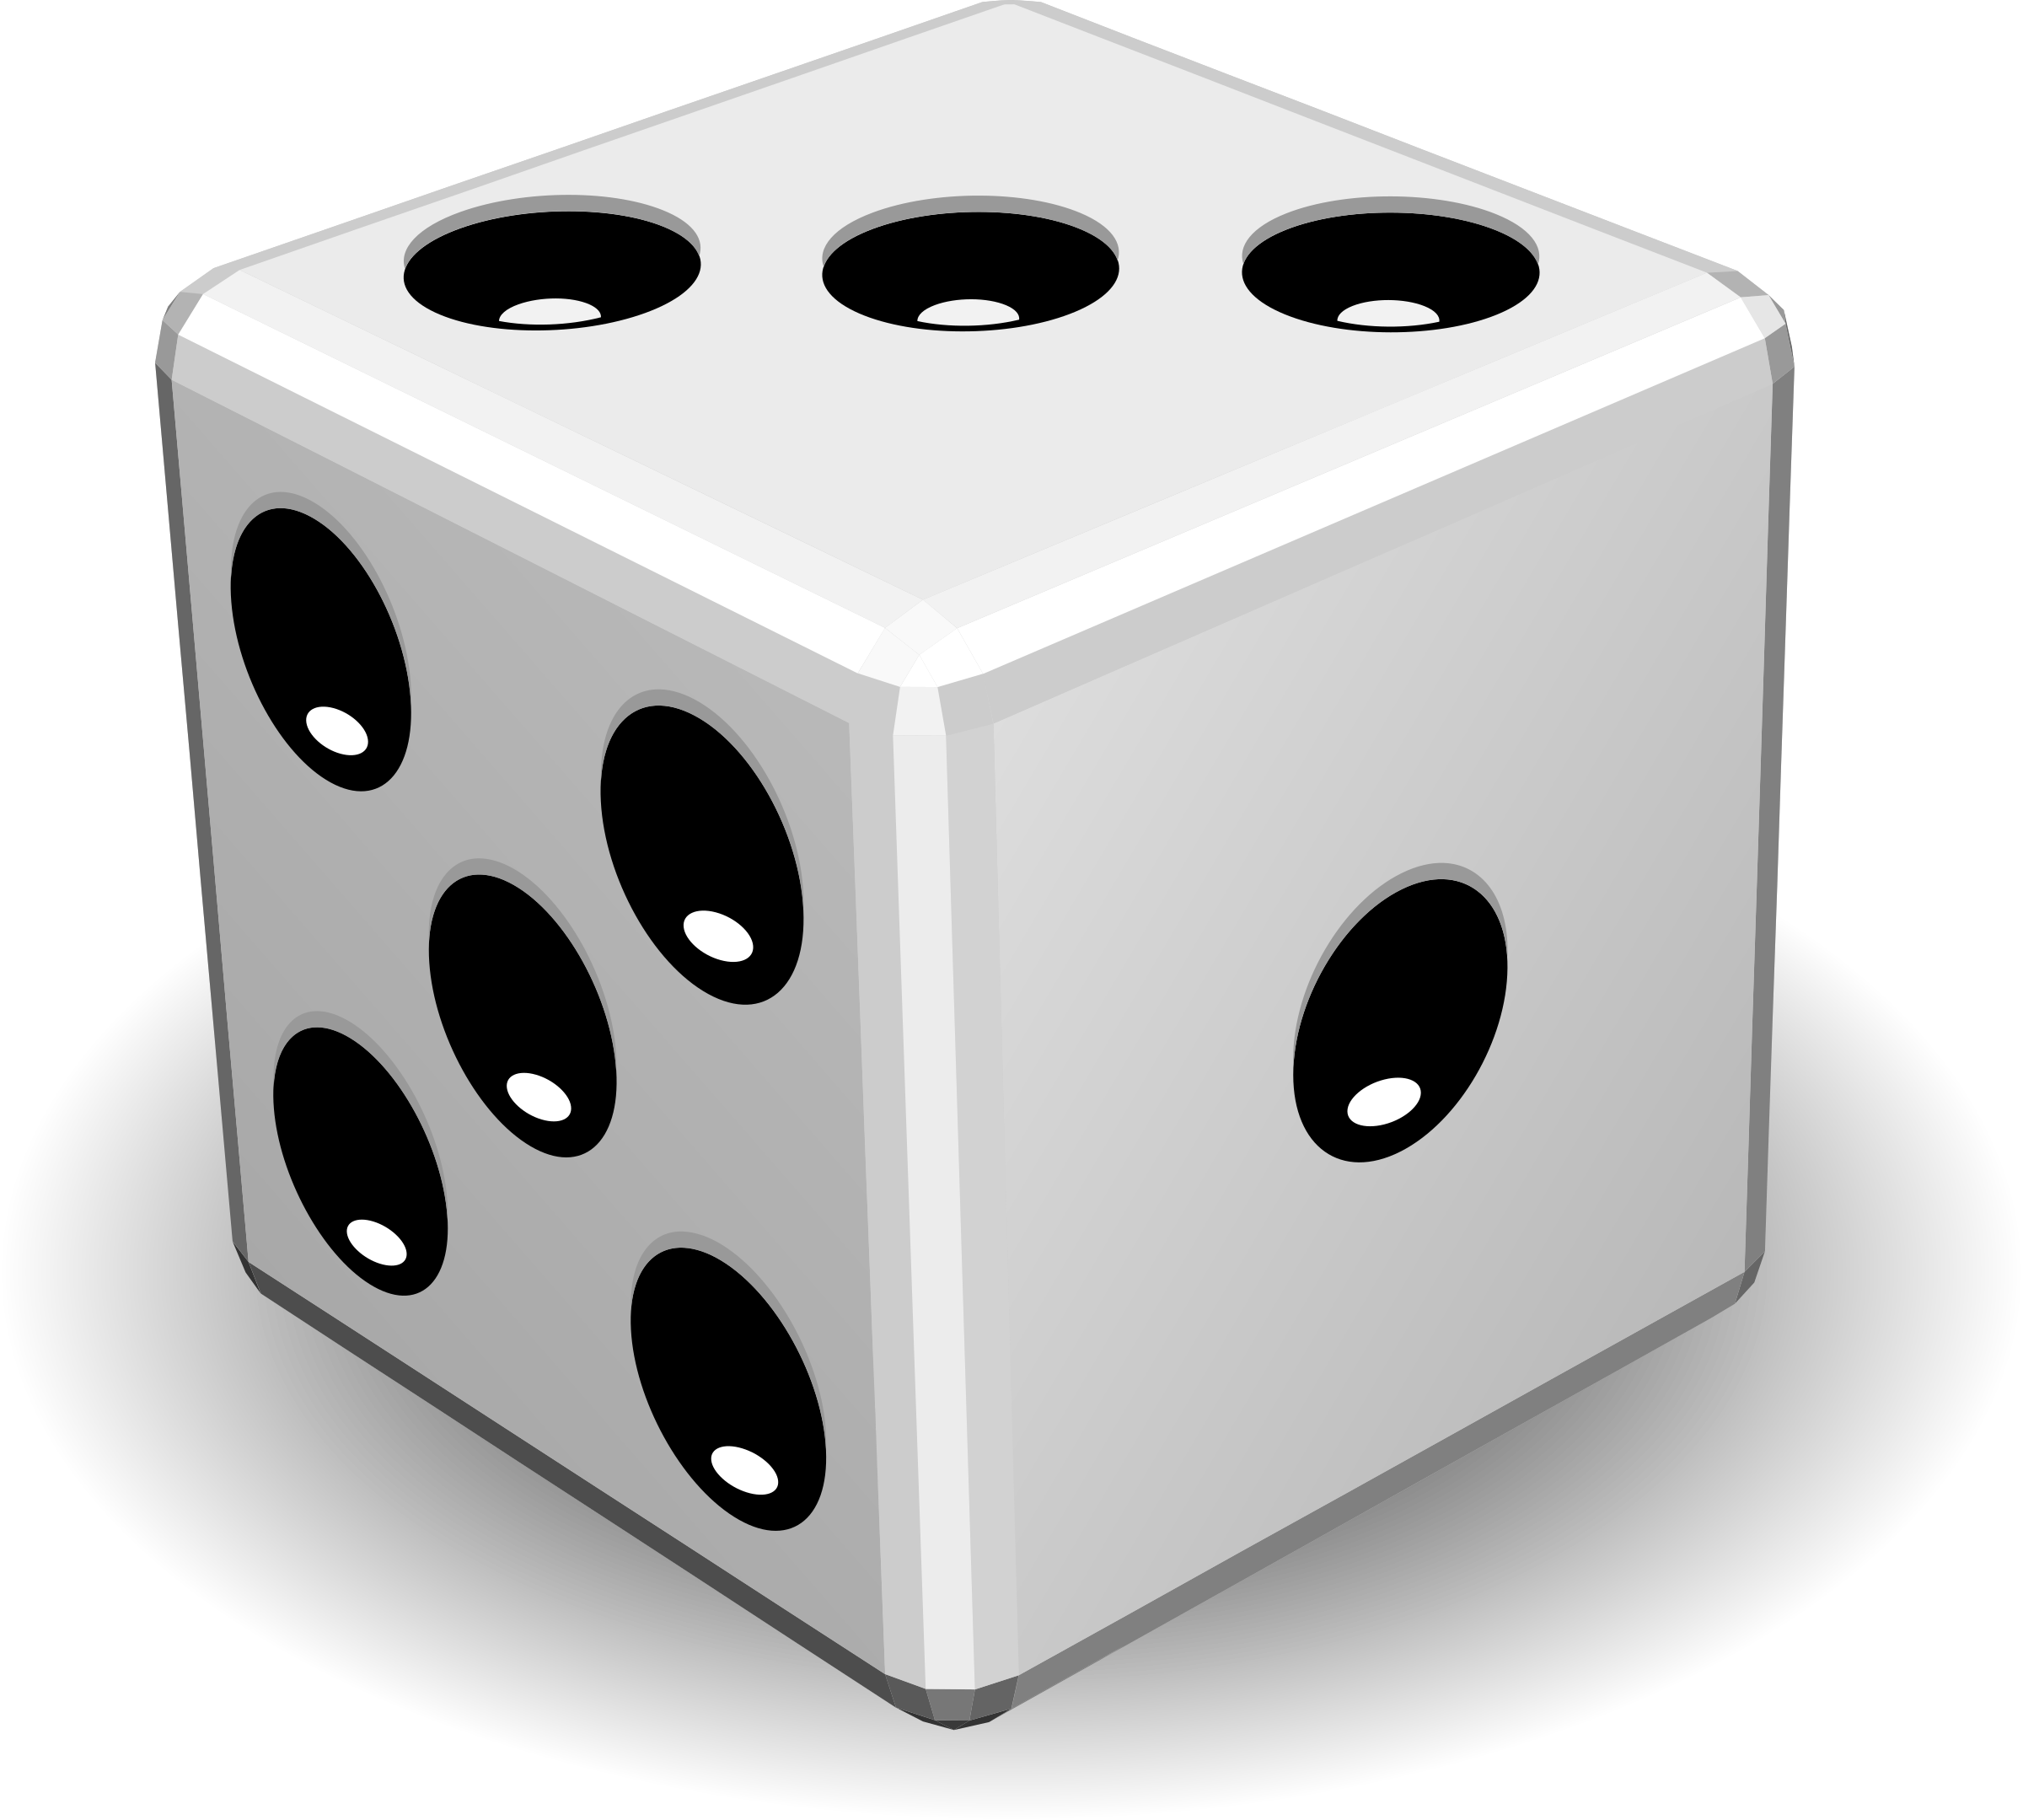 Dice 3 png. Icons free and downloads